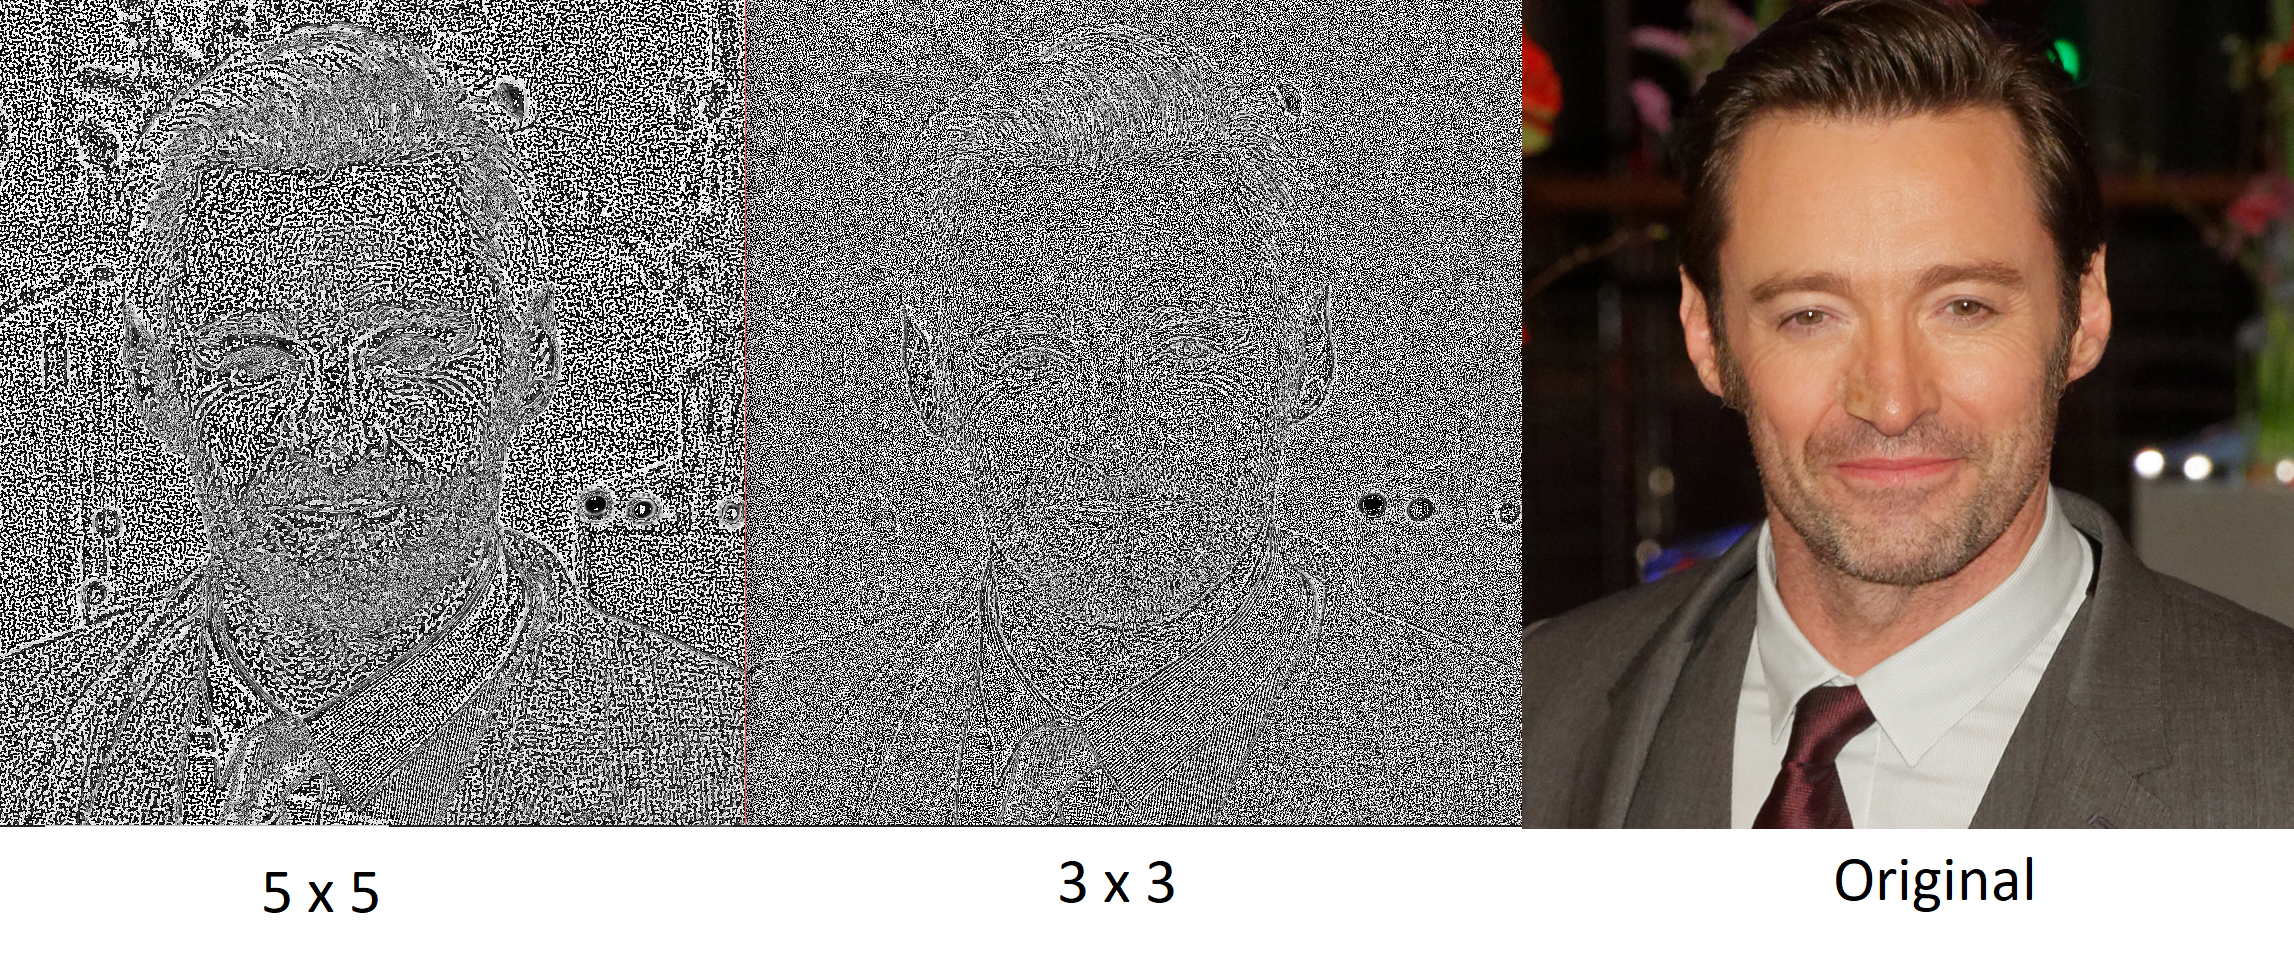 High Pass Filter image processing in python and opencv